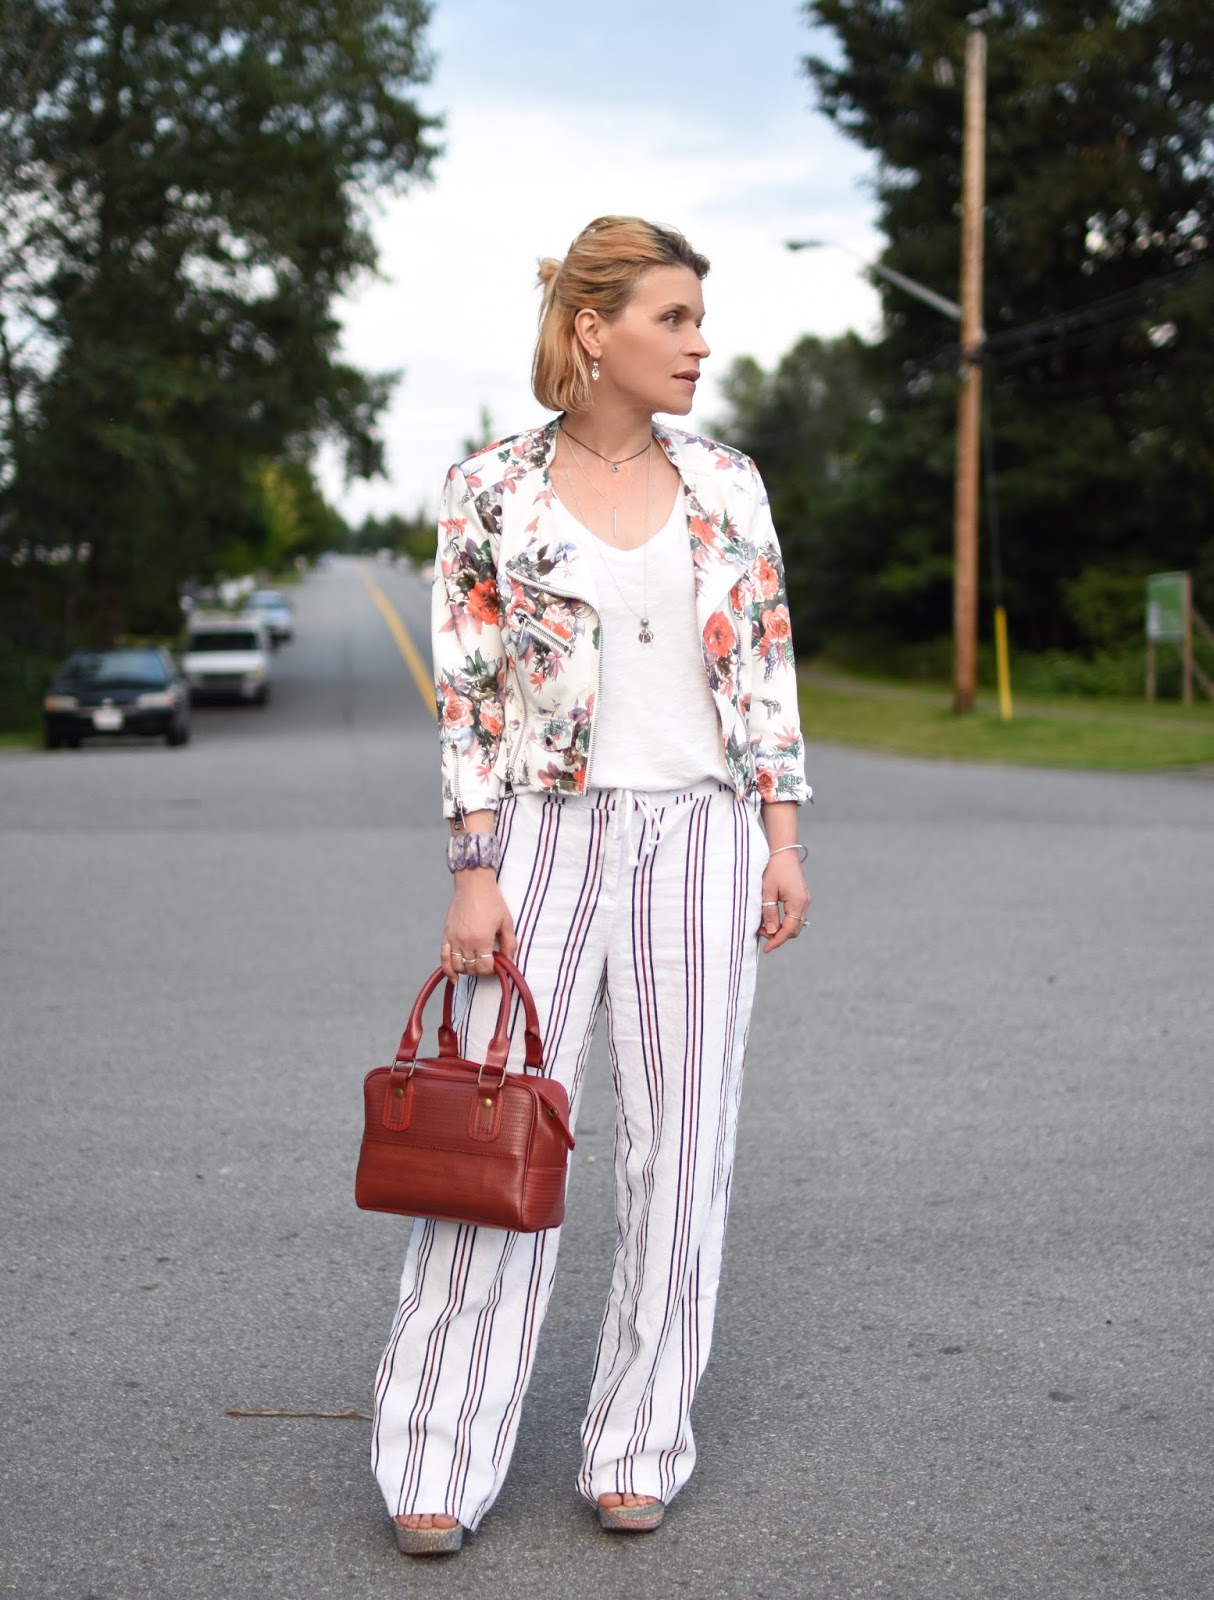 styling striped drawstring linen trousers with a slouchy tee, floral moto jacket, and Elvis & Kresse box bag